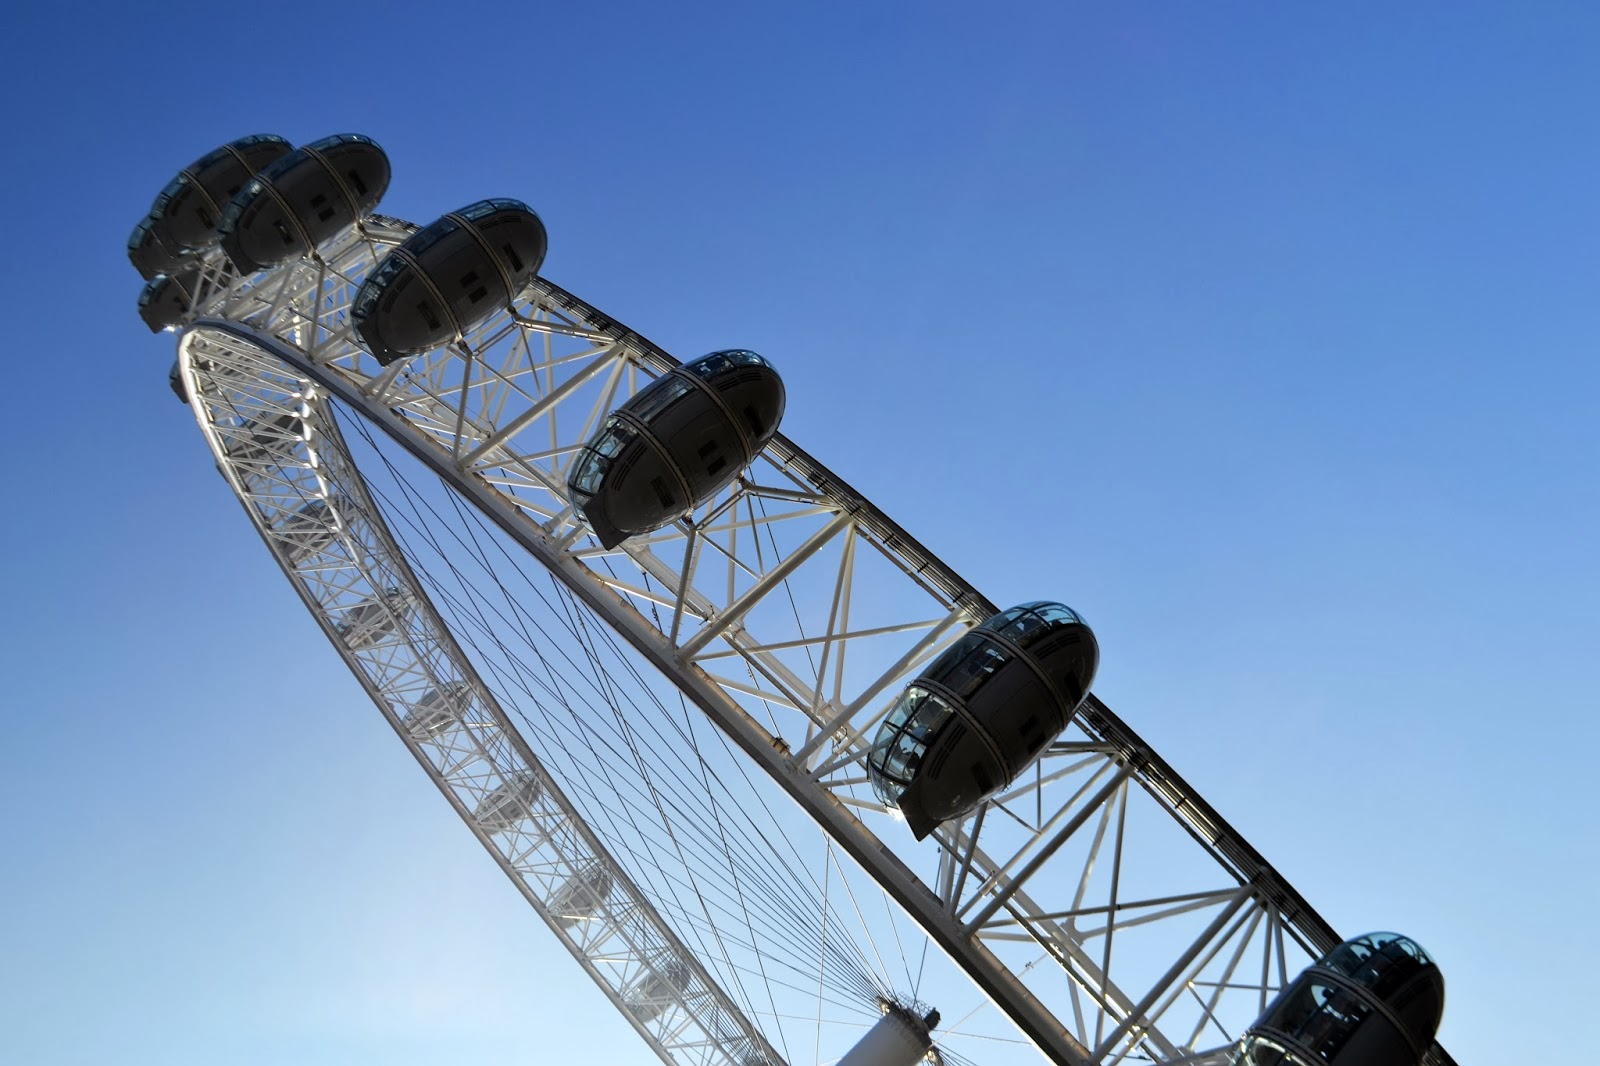 Looking up at the london eye from below